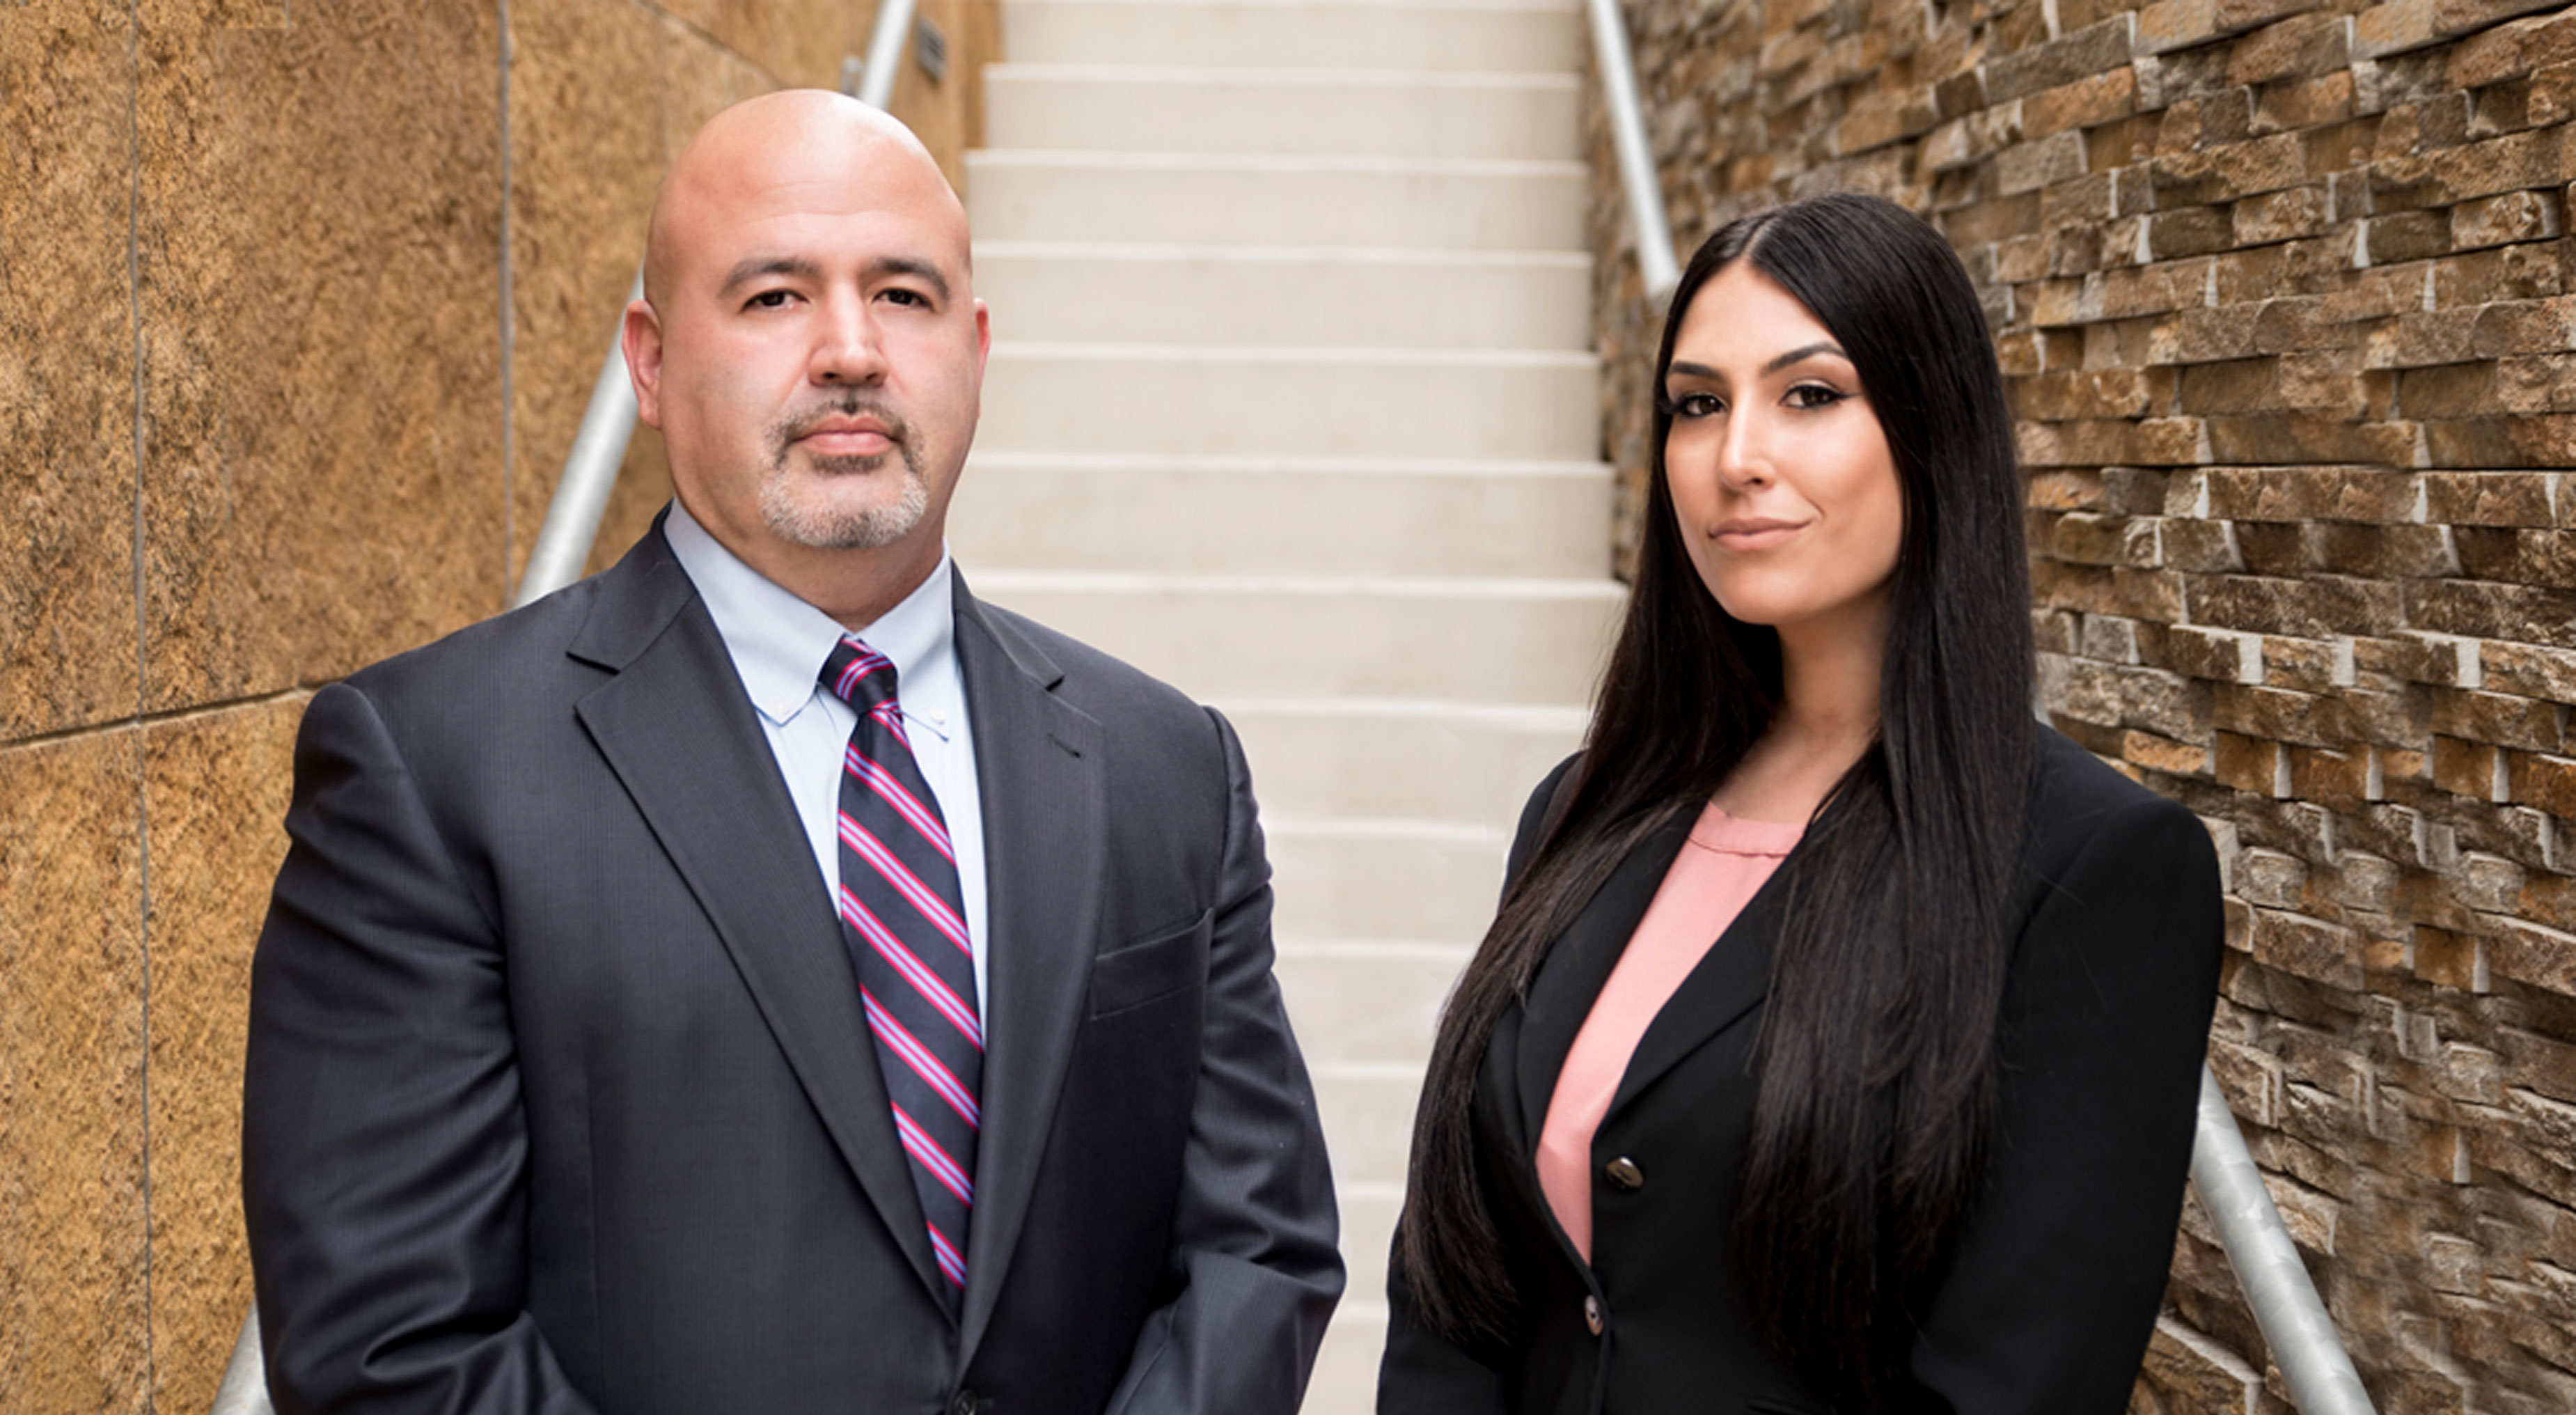 San Diego's Premier Civil Litigation Law Firm